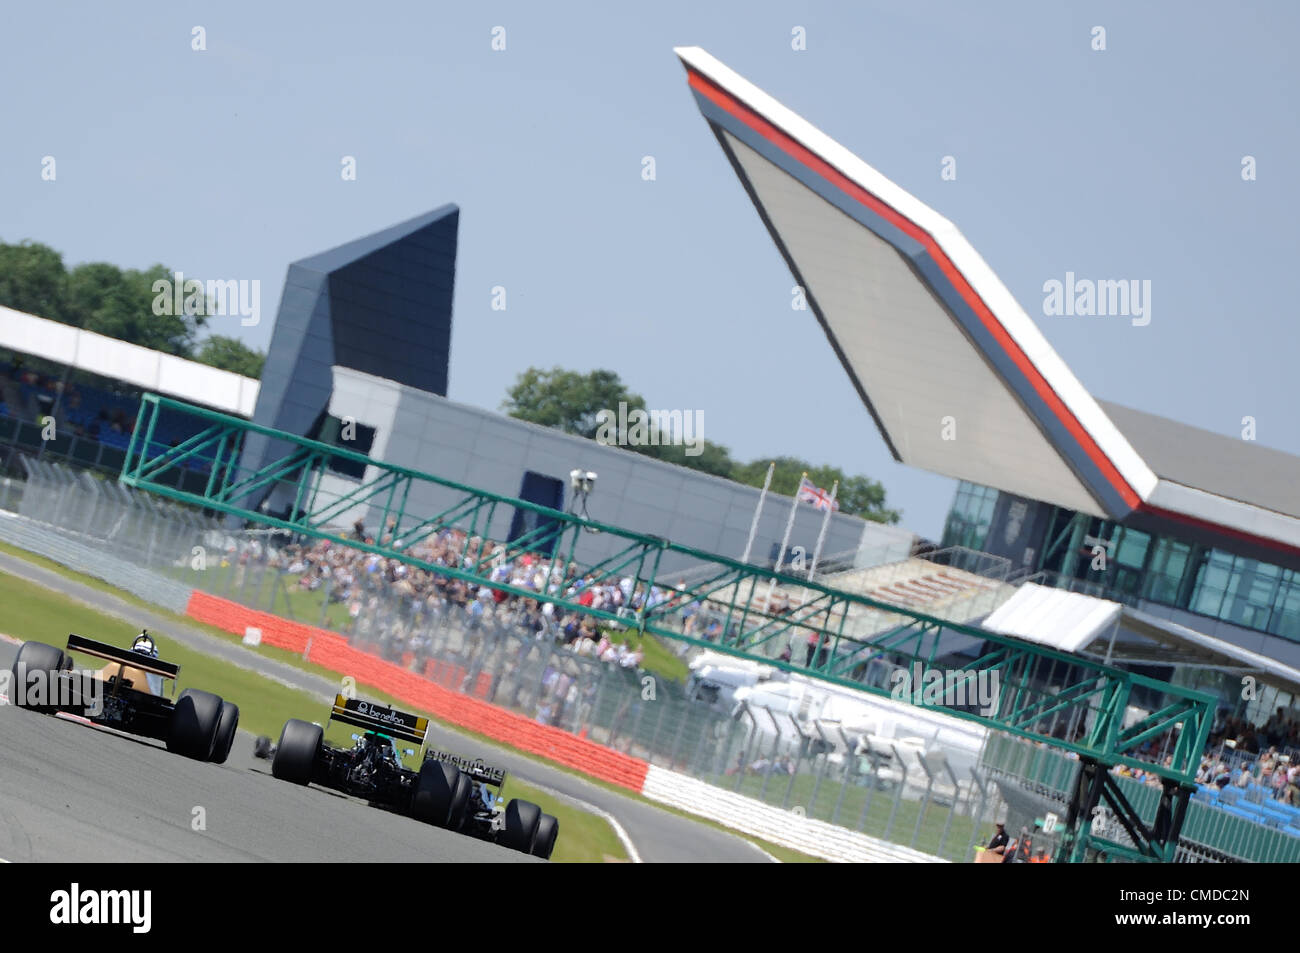 22nd July 2012, Silverstone, UK.  The historic F1 cars race for position during the Daily Express International - Stock Image